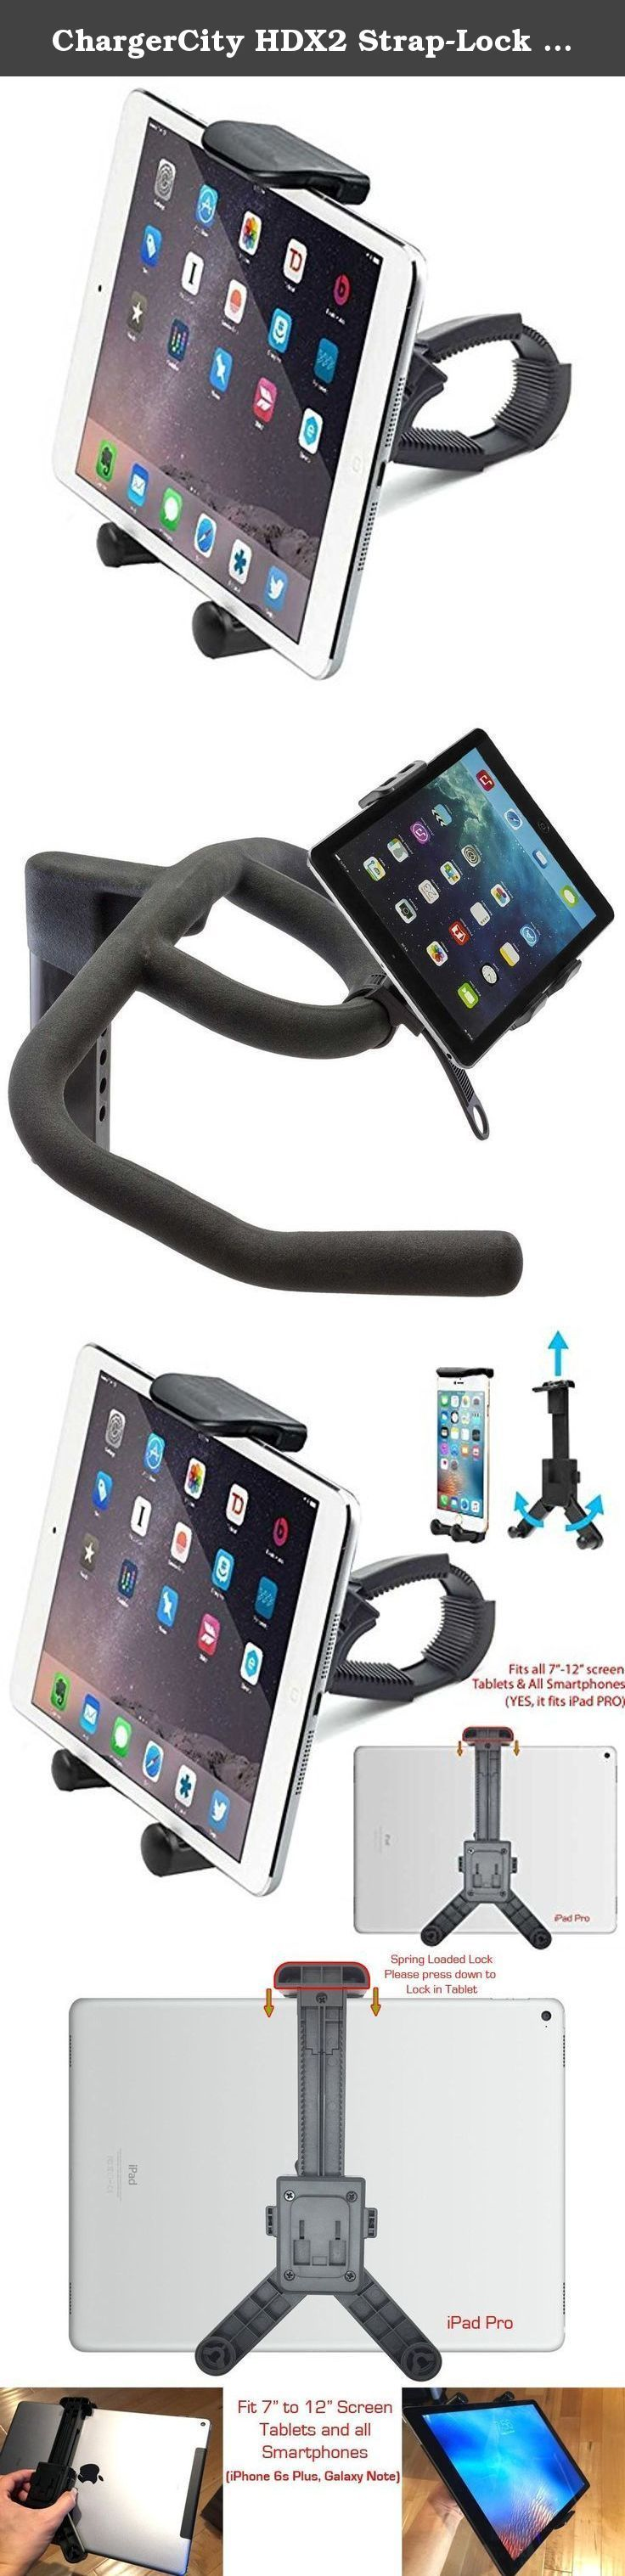 Awesome LG G5 2017: ChargerCity HDX2 Strap-Lock Mount for Bicycle Treadmill Exercise Spin Bike Helm ...  Exercise Bikes, Cardio Training, Exercise & Fitness, Sports & Fitness, Sports & Outdoors Check more at http://technoboard.info/2017/product/lg-g5-2017-chargercity-hdx2-strap-lock-mount-for-bicycle-treadmill-exercise-spin-bike-helm-exercise-bikes-cardio-training-exercise-fitness-sports-fitness-sports-outdoors/